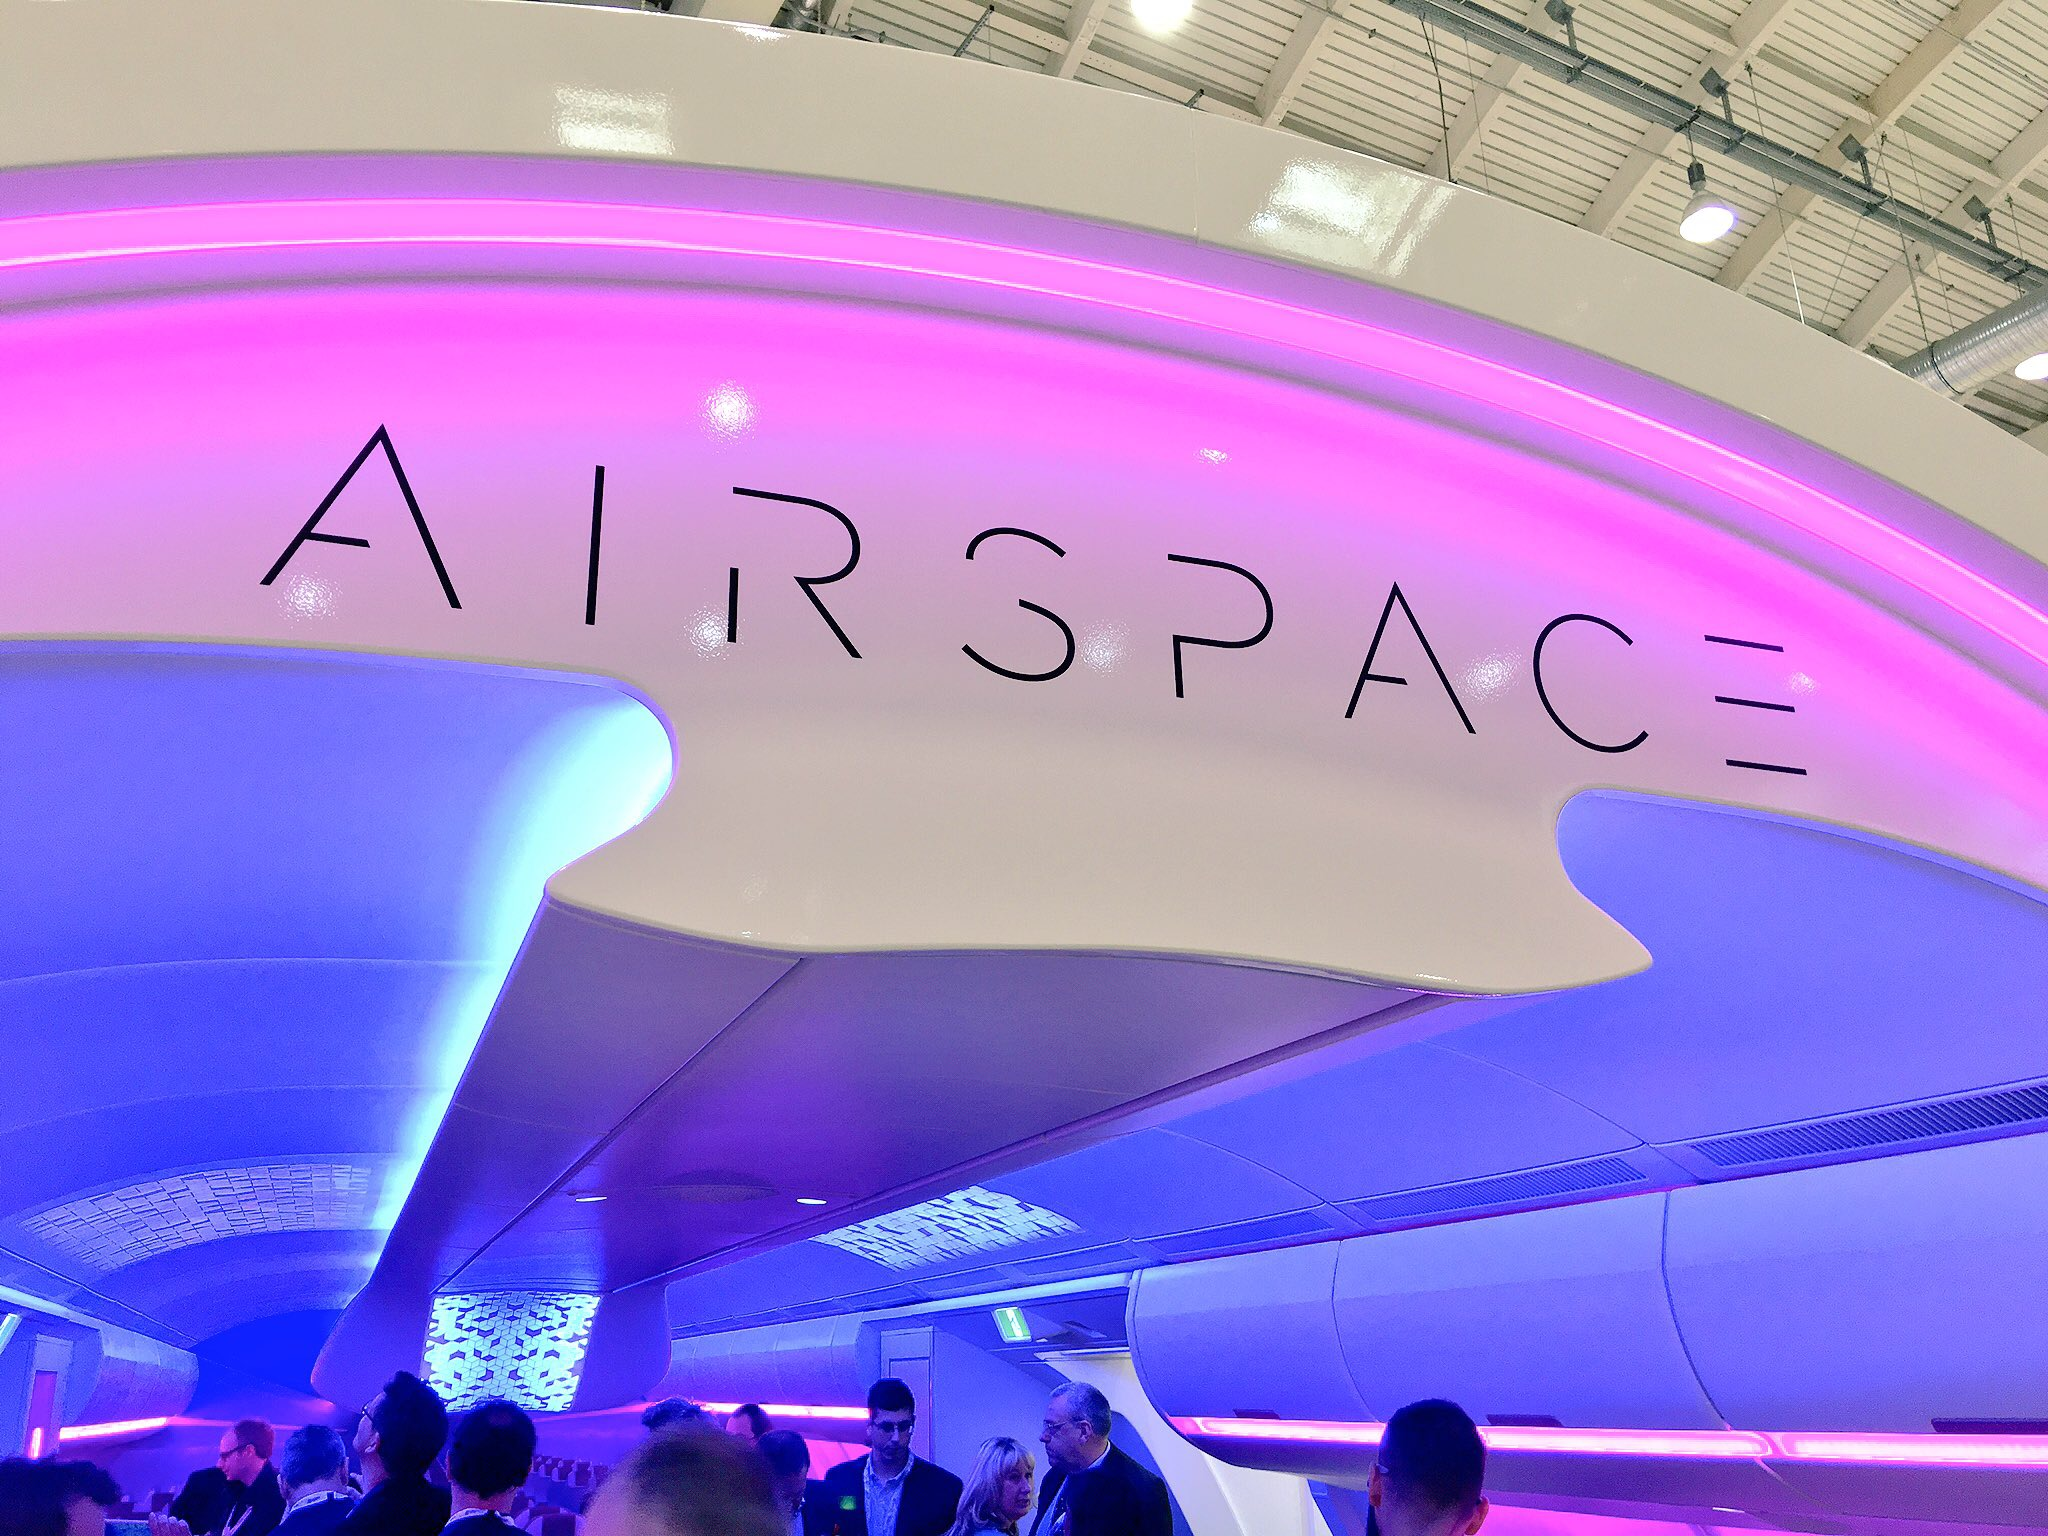 Airbus exhibited it's Airspace cabin at AIX in Hamburg this spring, Image: John Walton